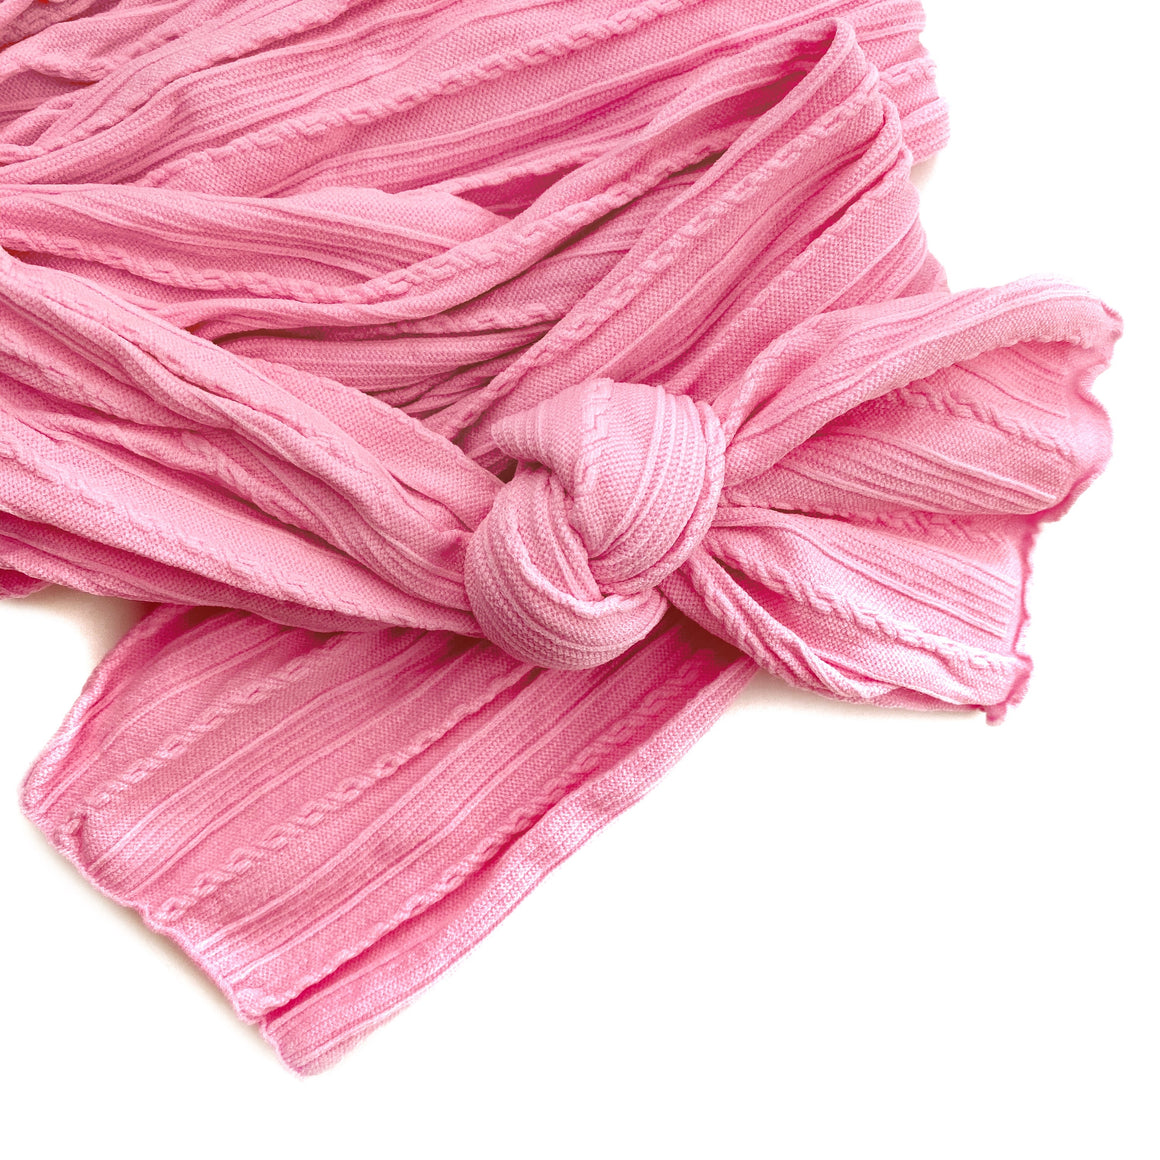 Sweet Pink Braid Knit Nylon Material